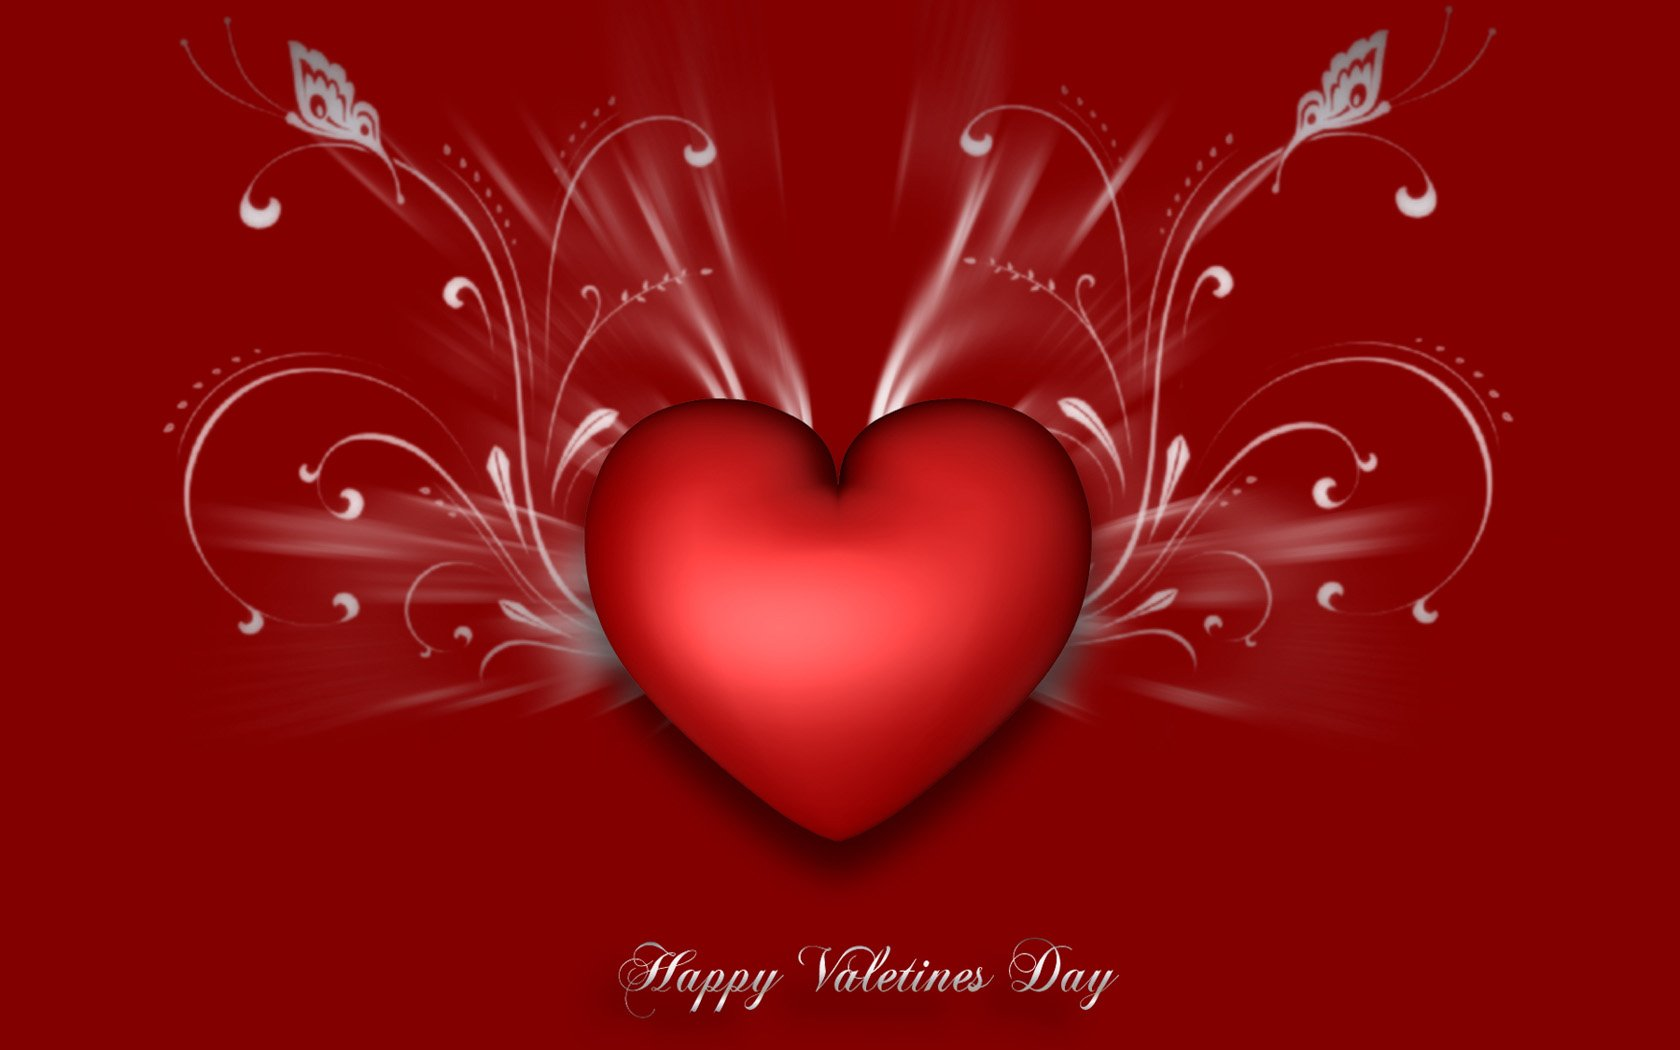 Valentine Backgrounds Free Wallpapersafari